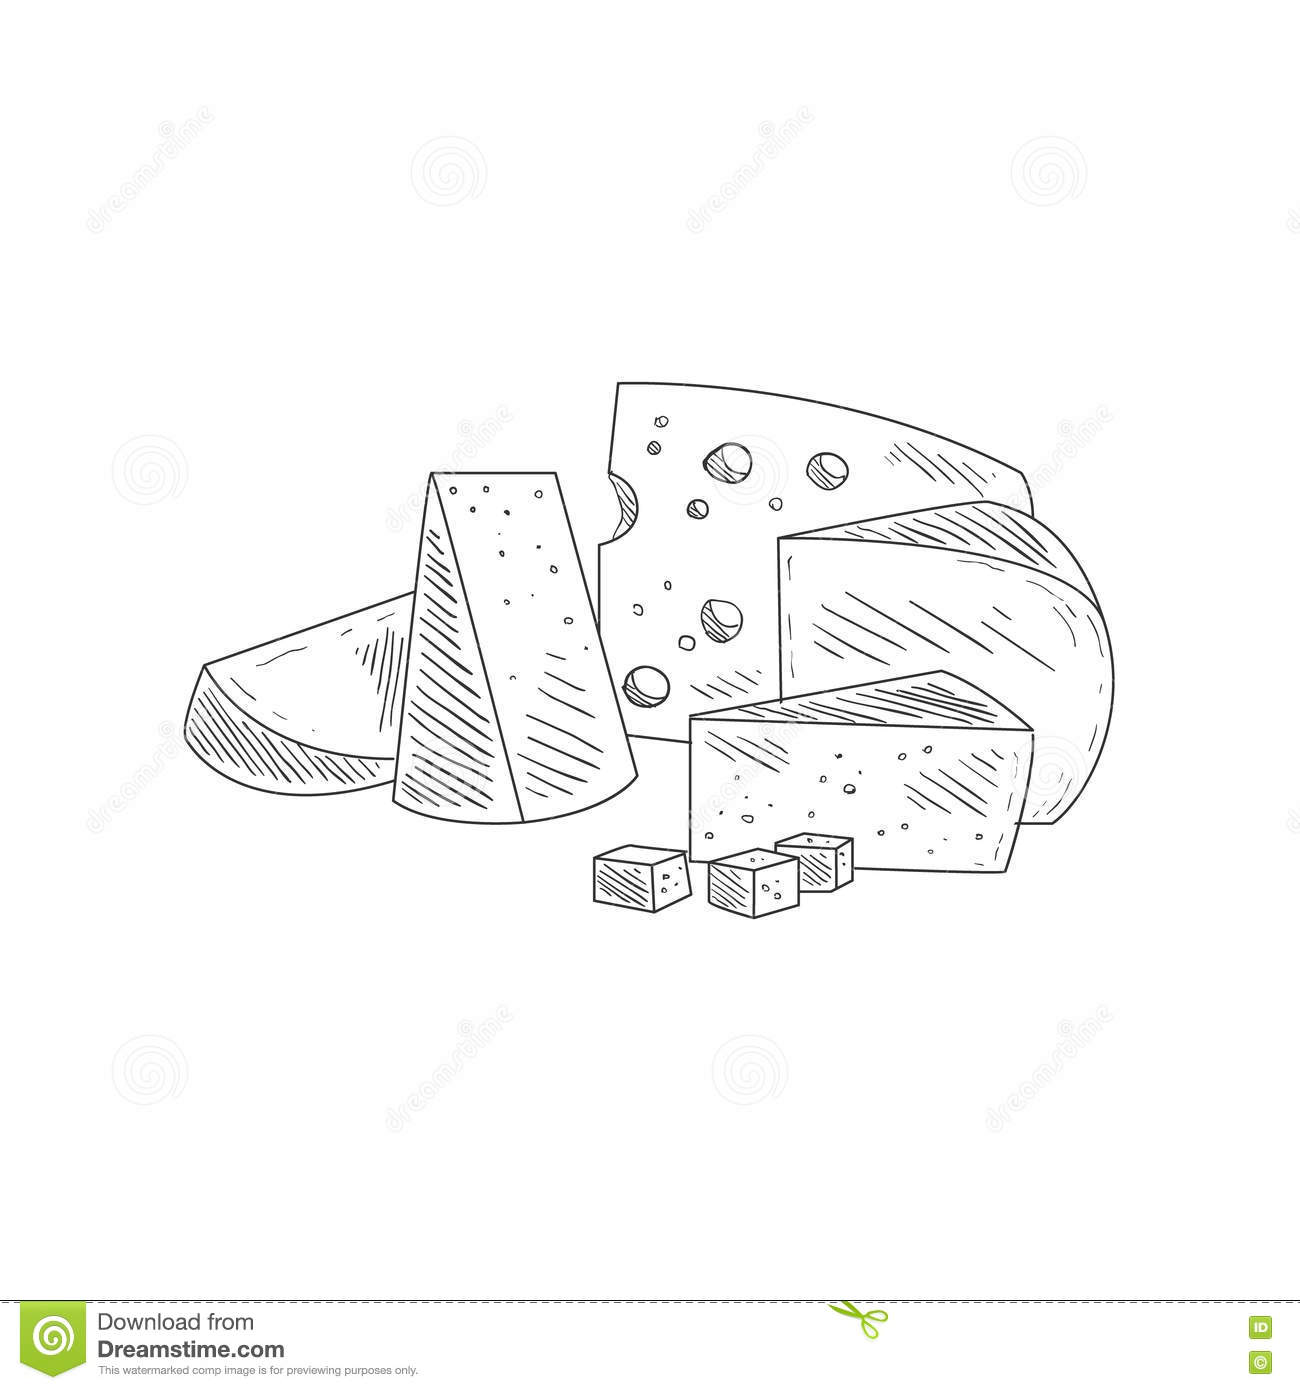 wiring diagram database  cheese assortment plate hand drawn realistic  sketch stock